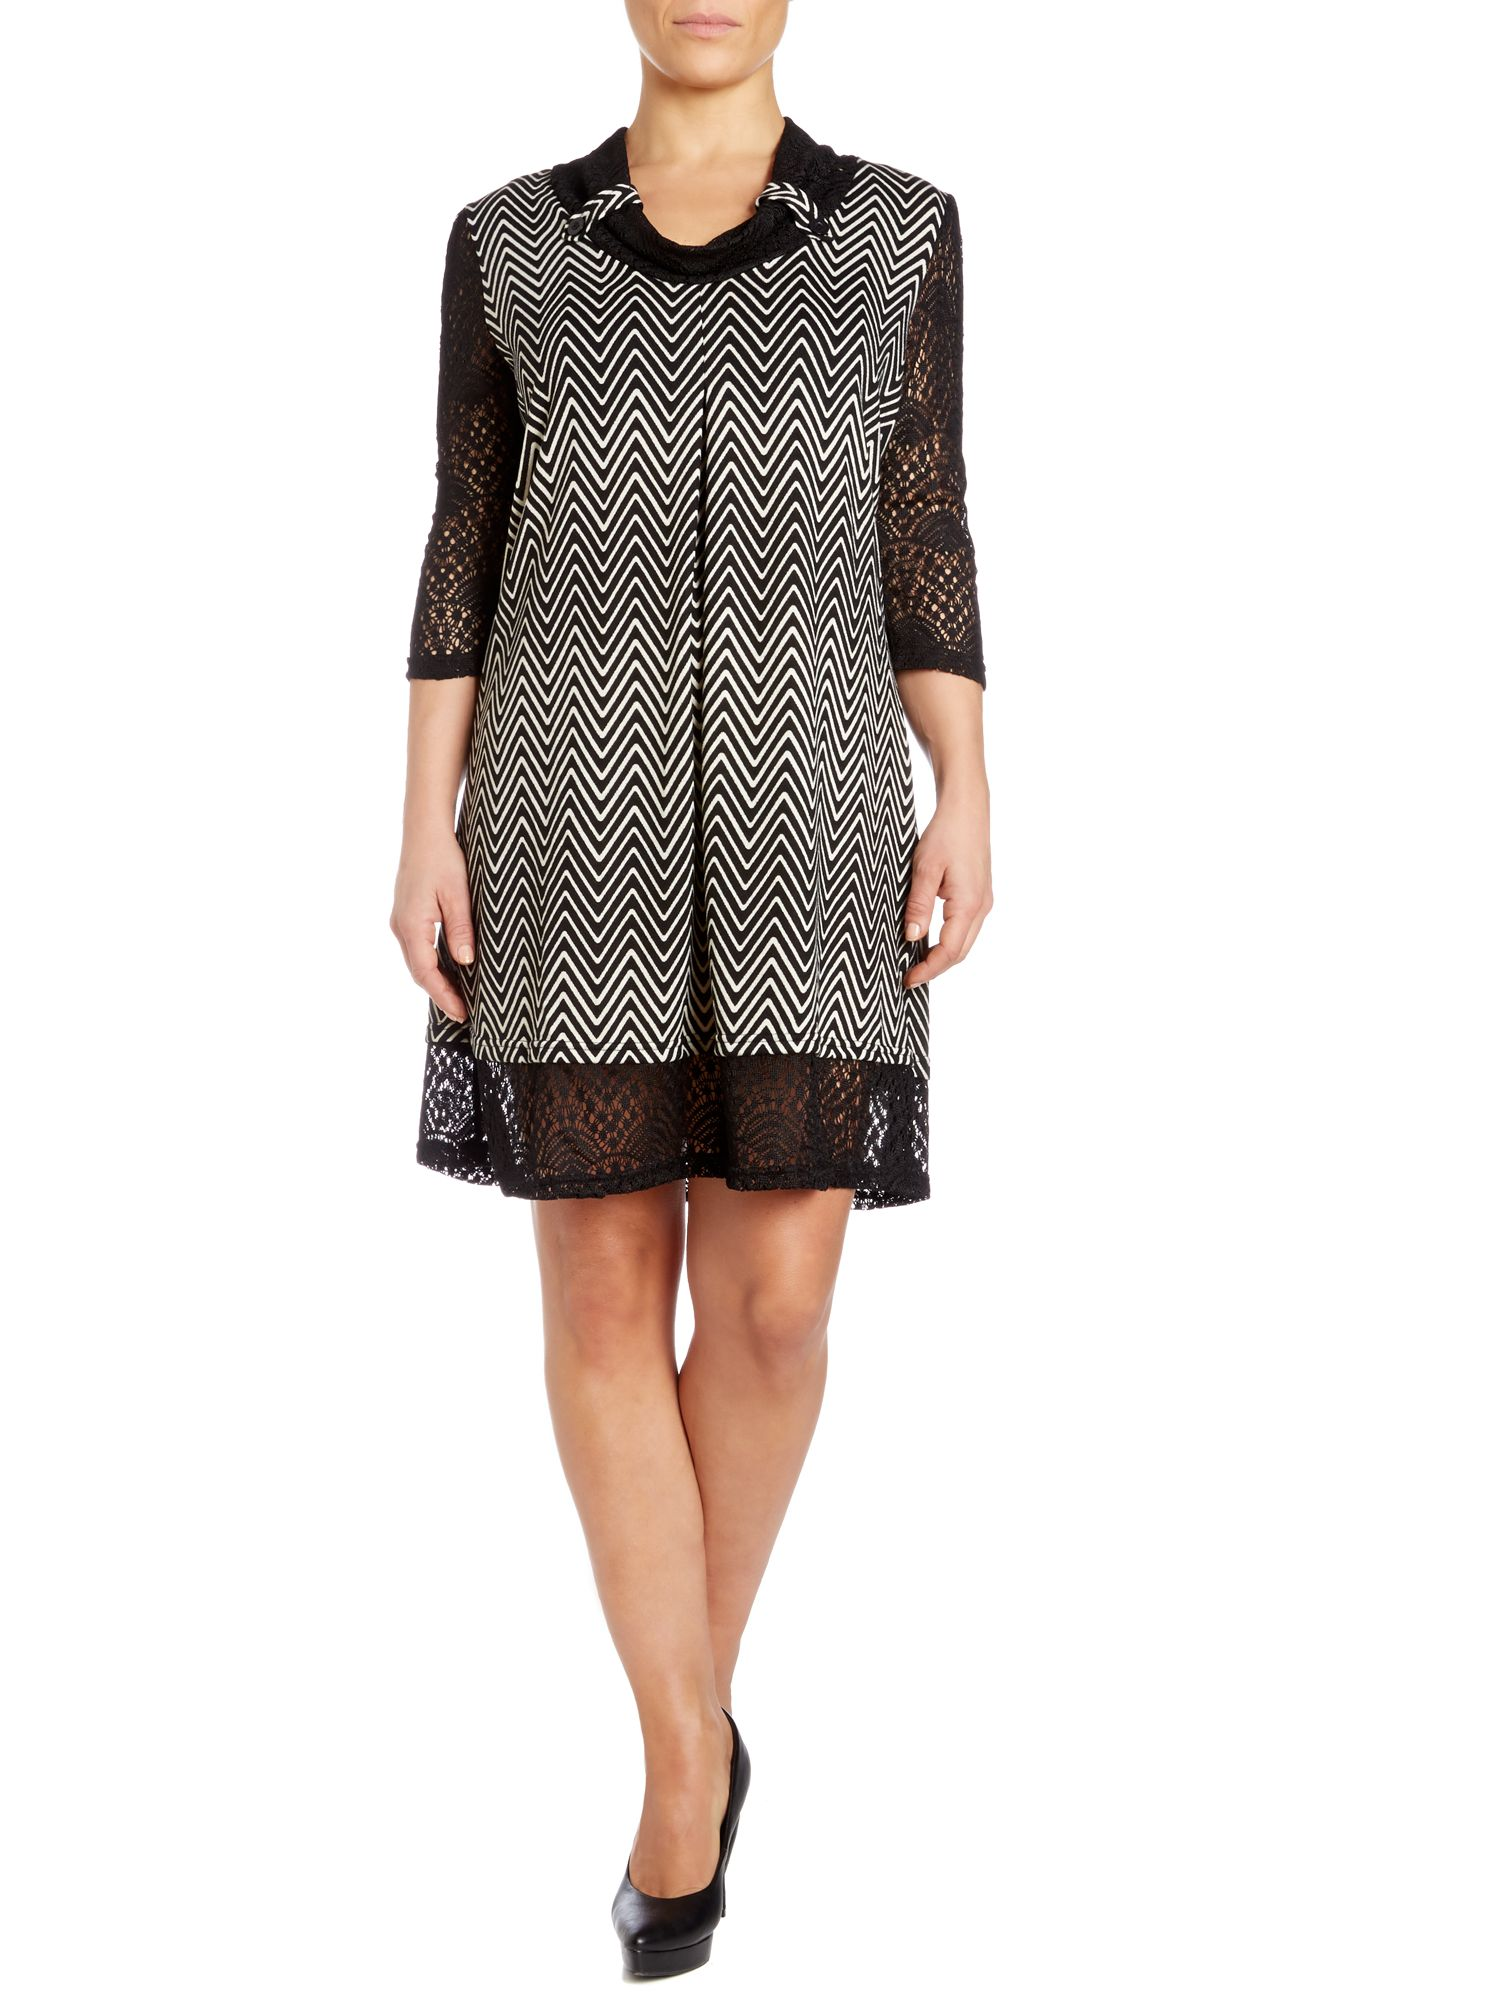 Zigzag knit dress with lace panels